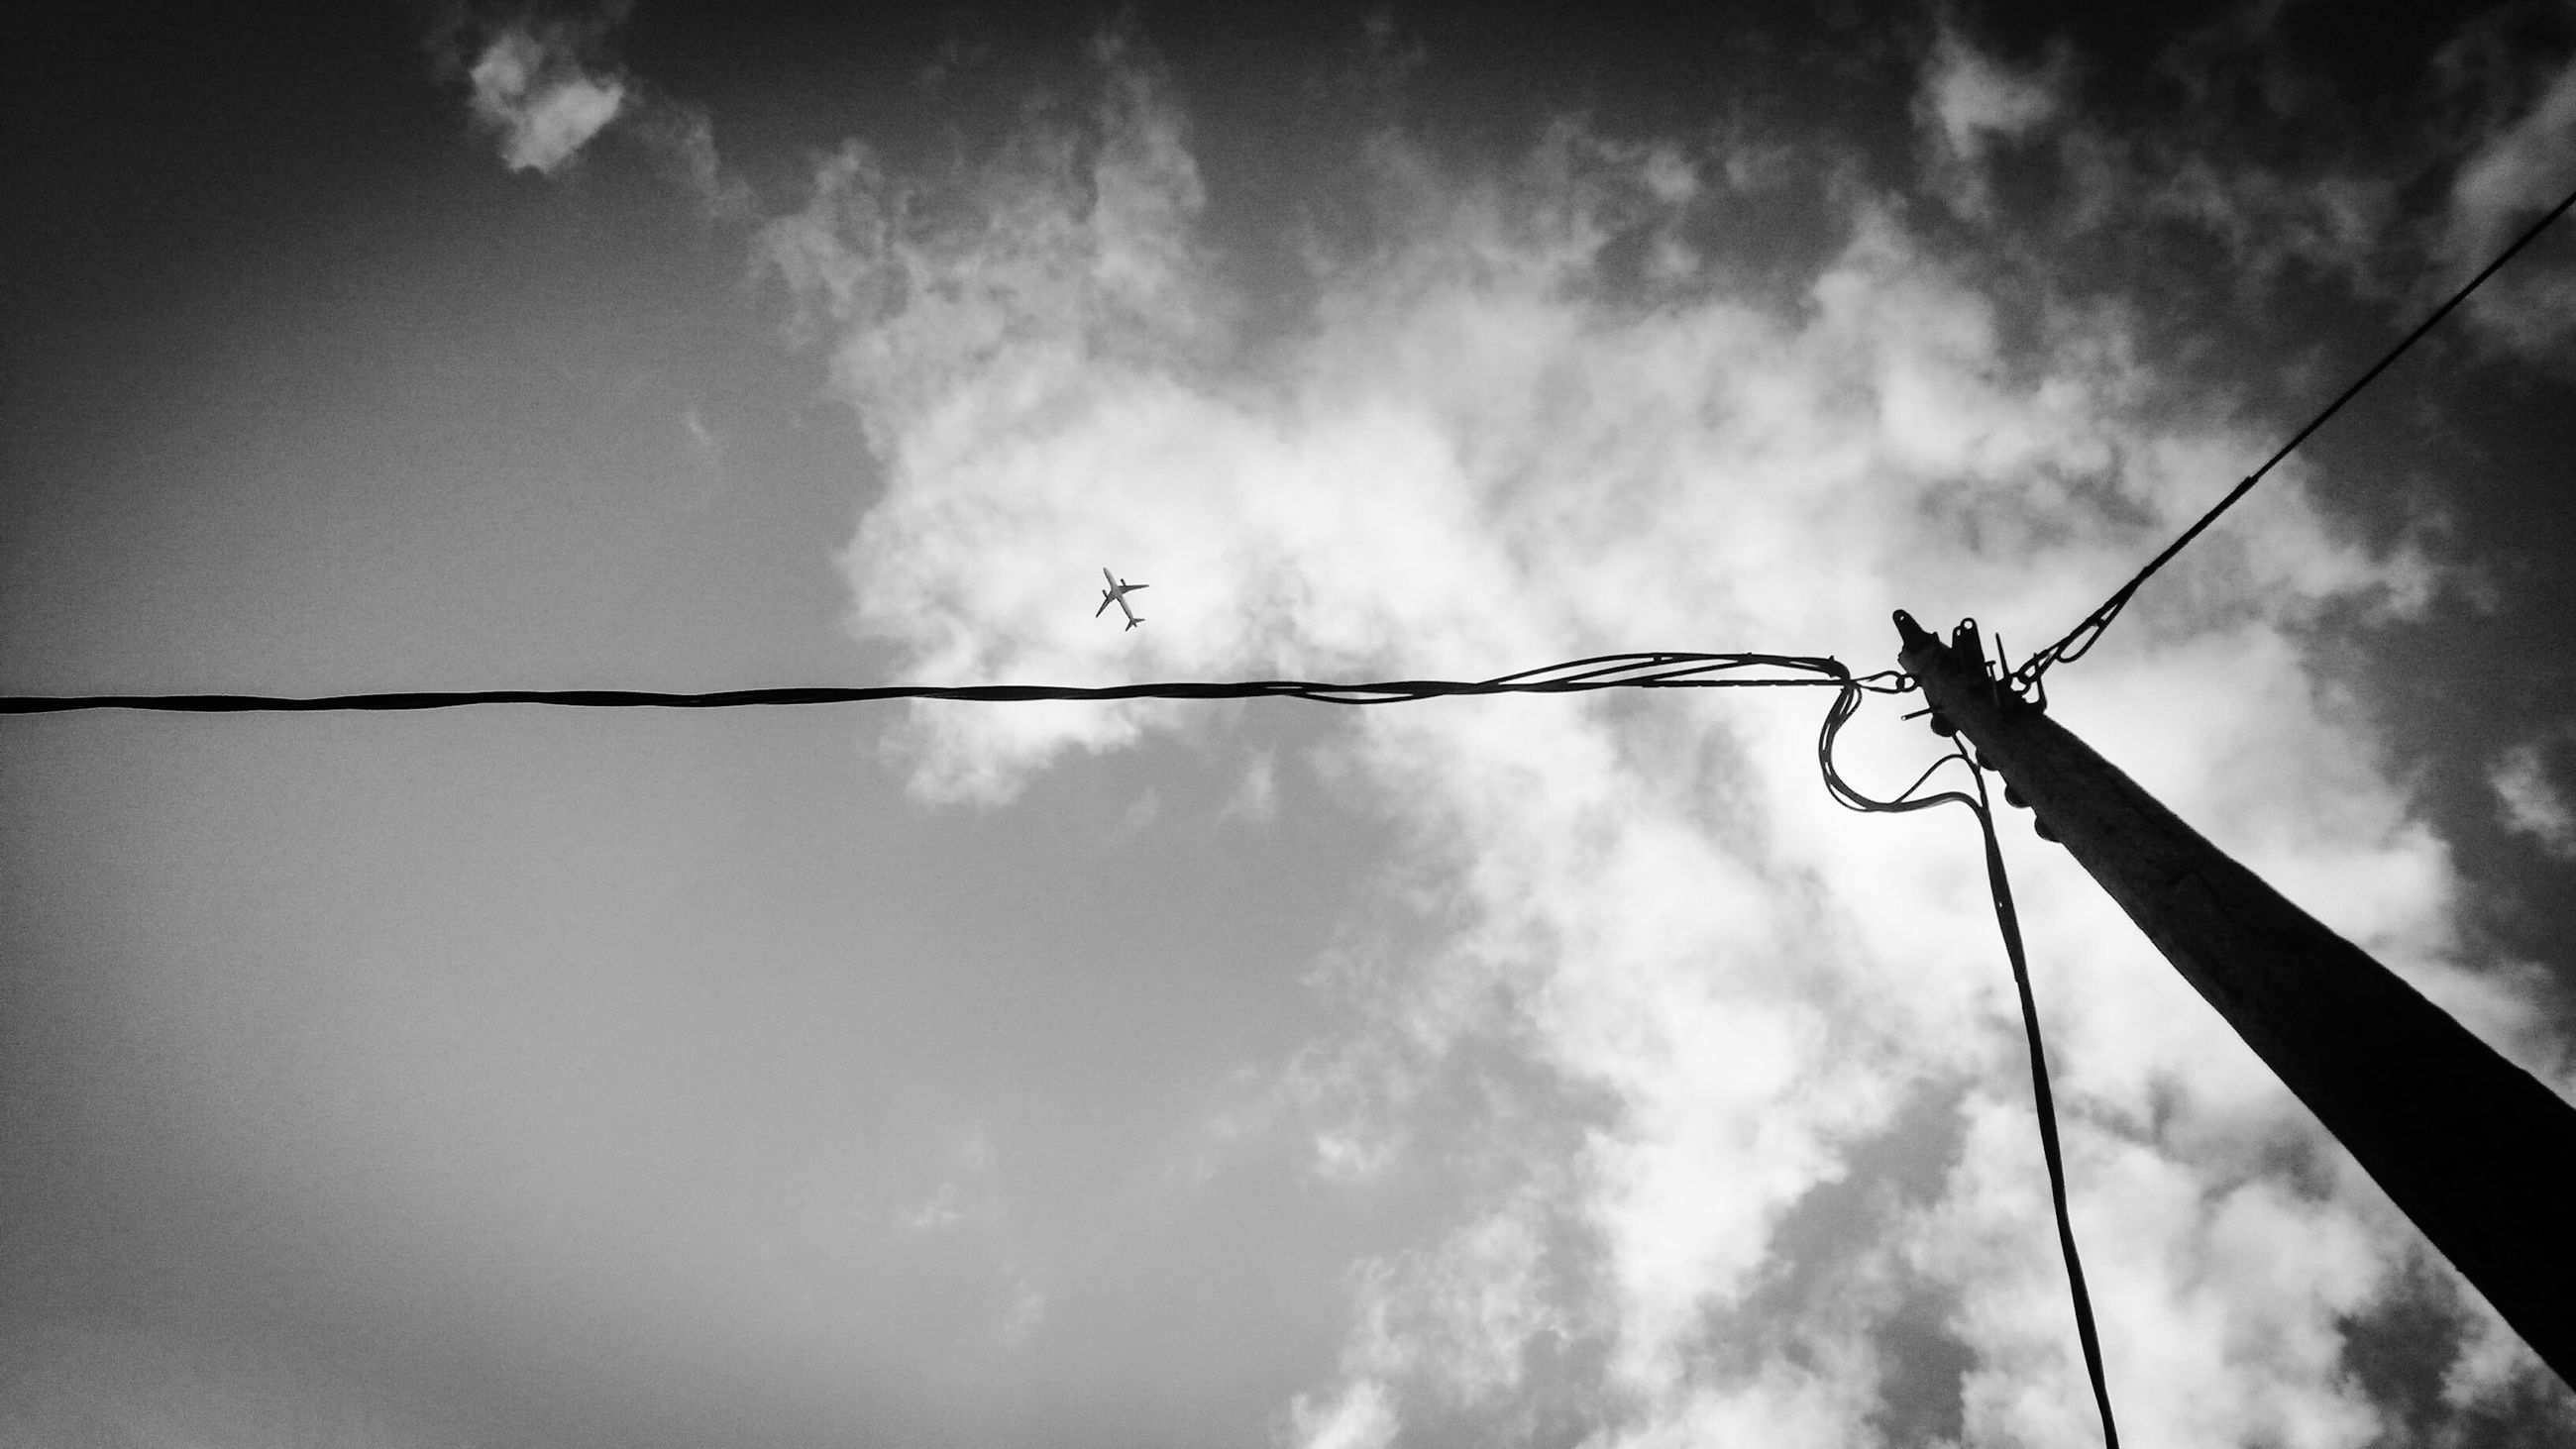 low angle view, sky, power line, electricity, cable, power supply, cloud - sky, electricity pylon, fuel and power generation, connection, cloudy, technology, animal themes, pole, silhouette, cloud, perching, day, outdoors, power cable